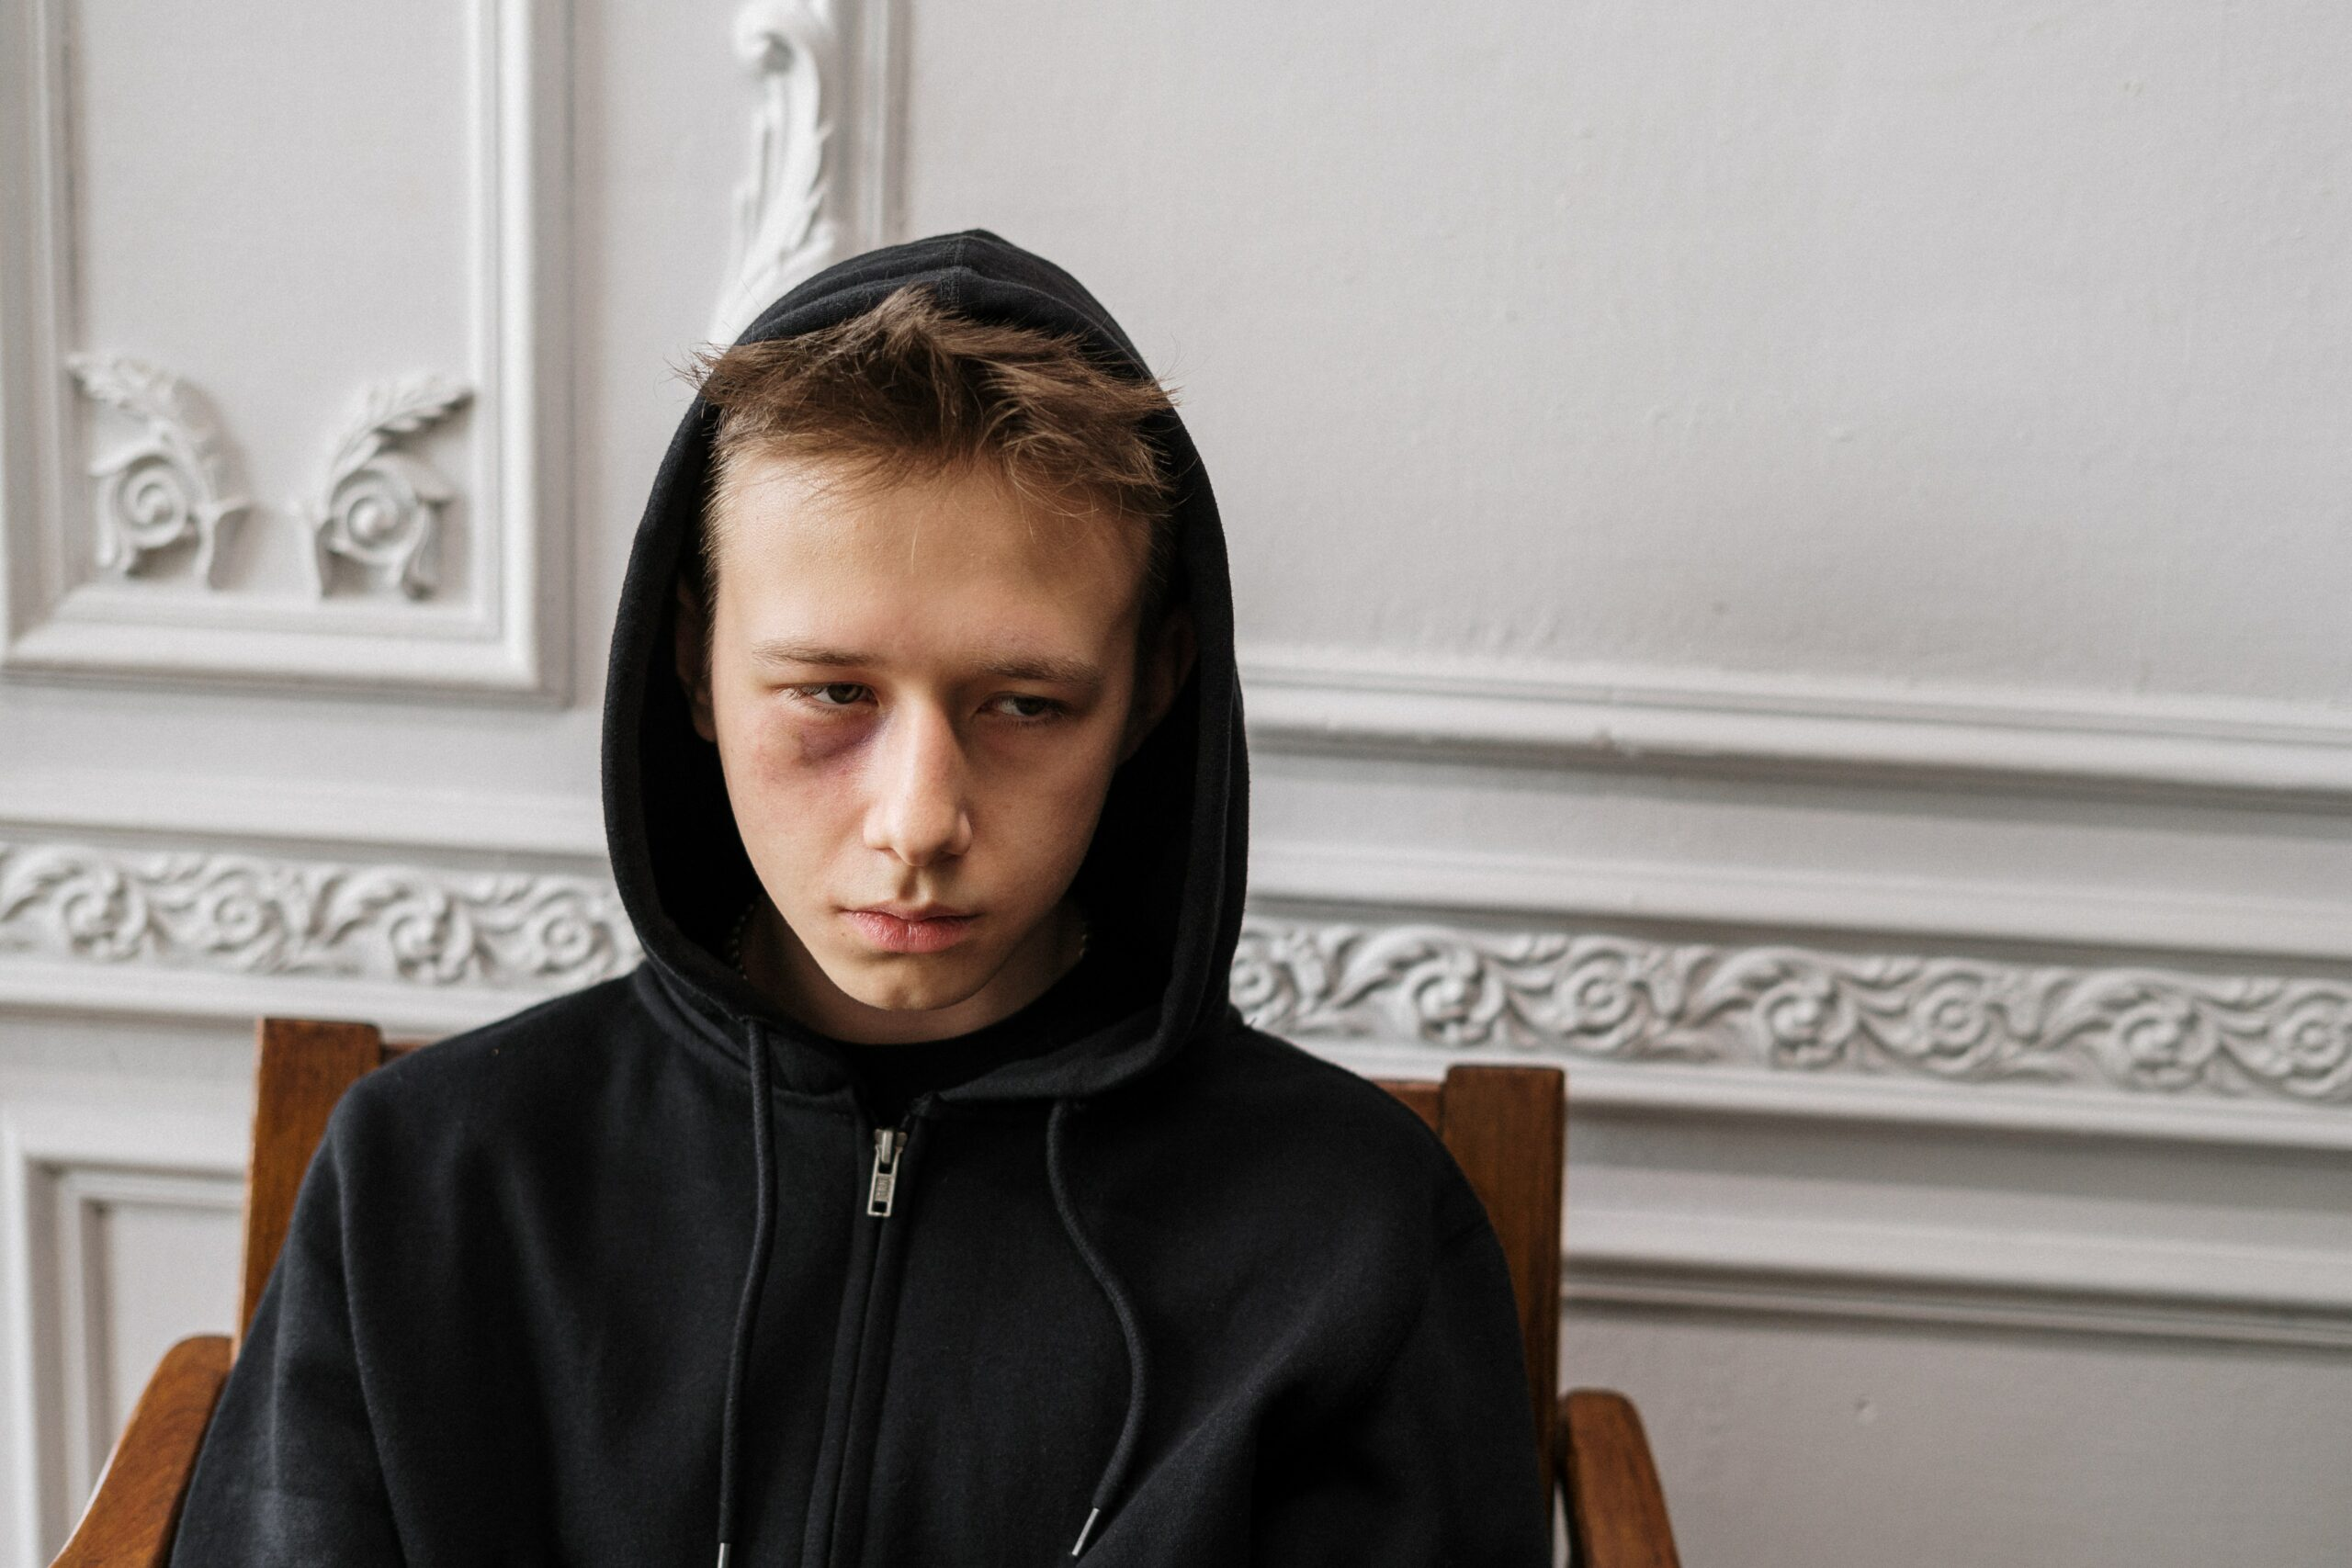 a kid with bruises near his eye